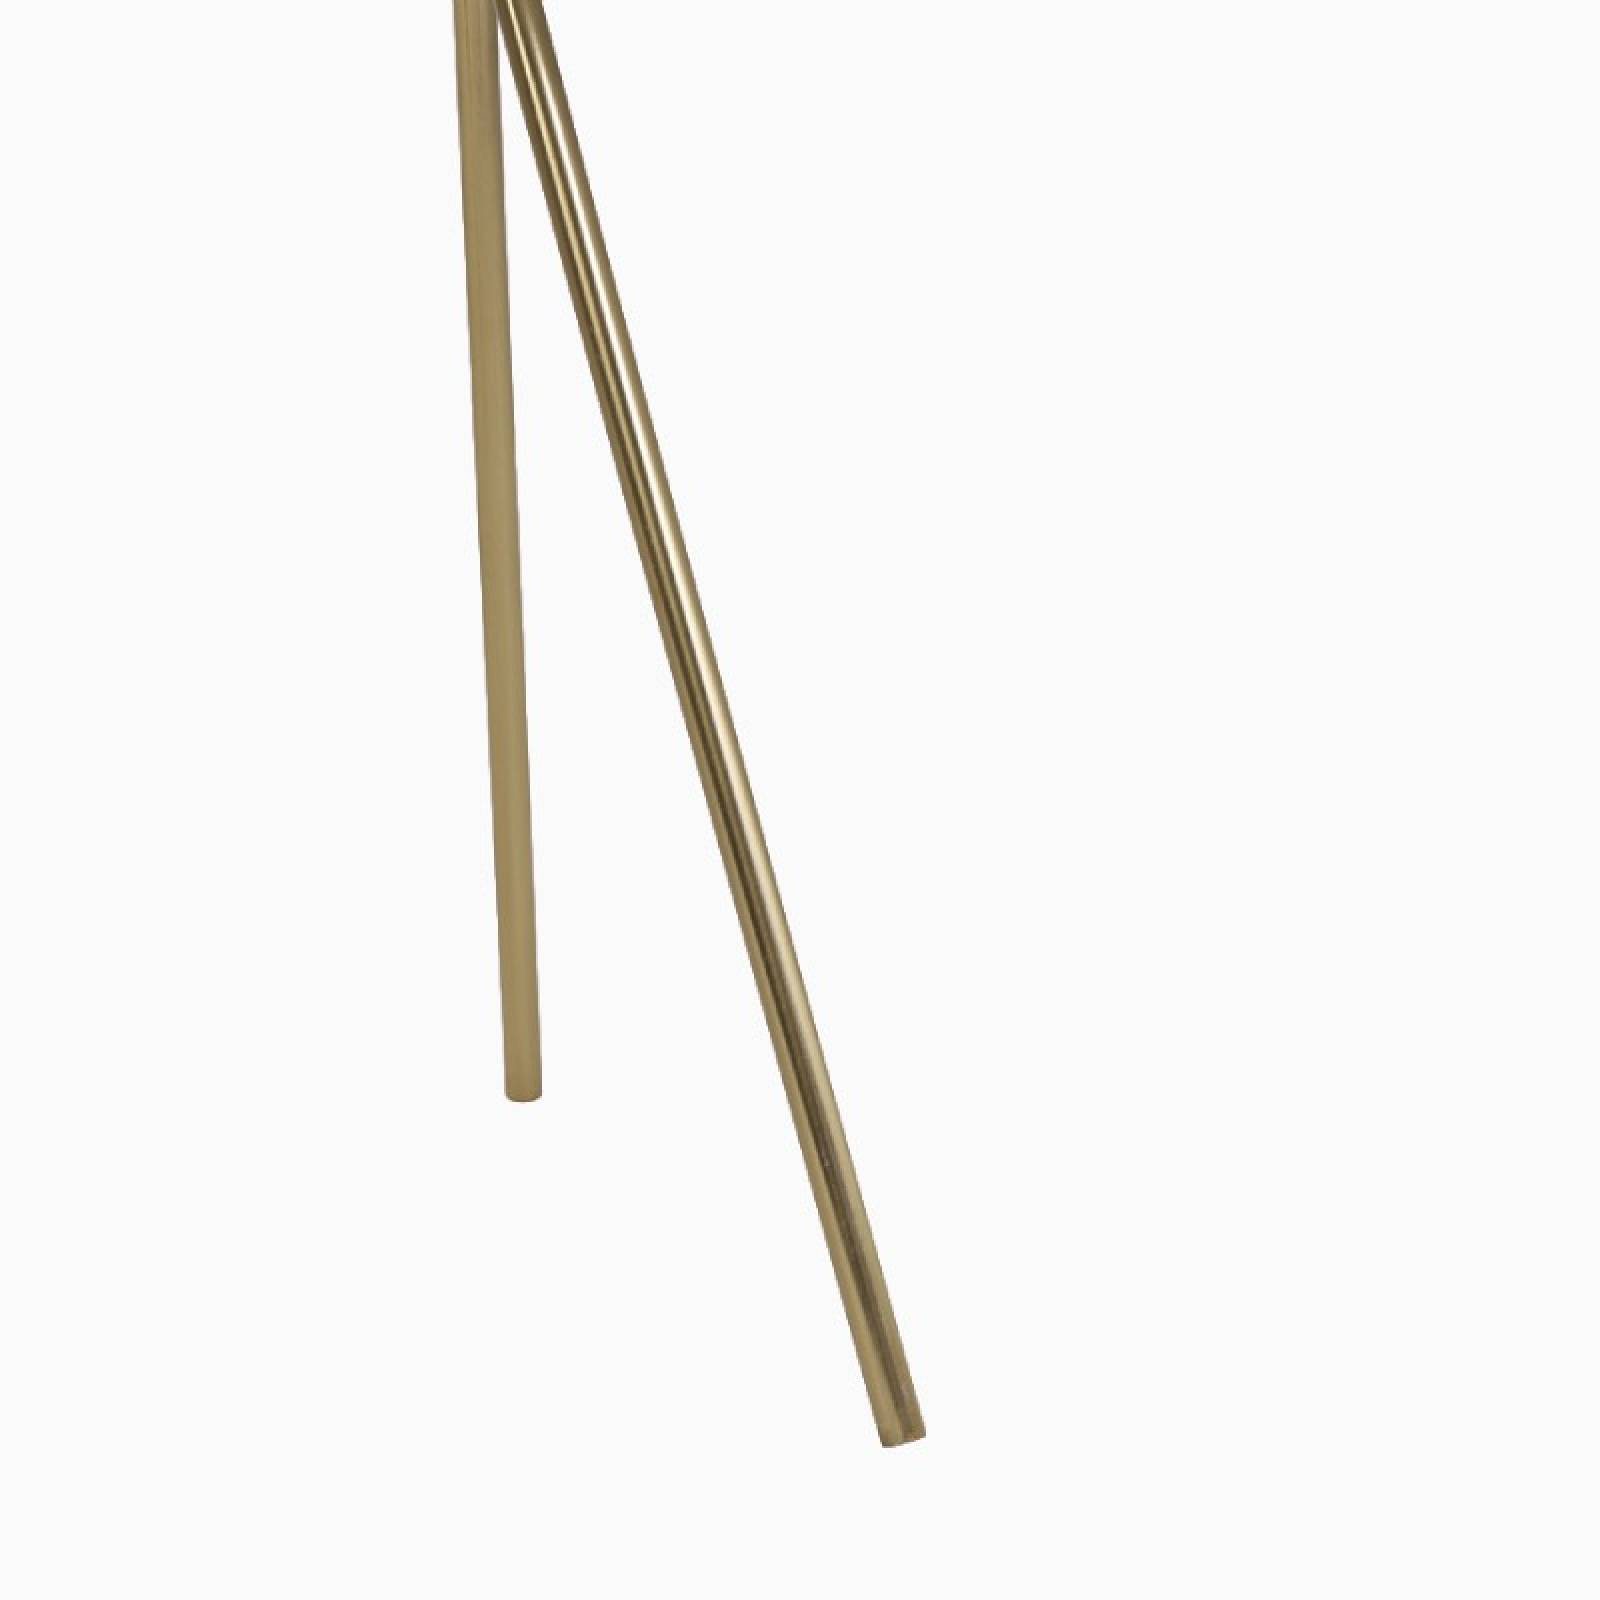 Small Green Marble Table Brass Tripod Legs | Delivery Surcharge thumbnails